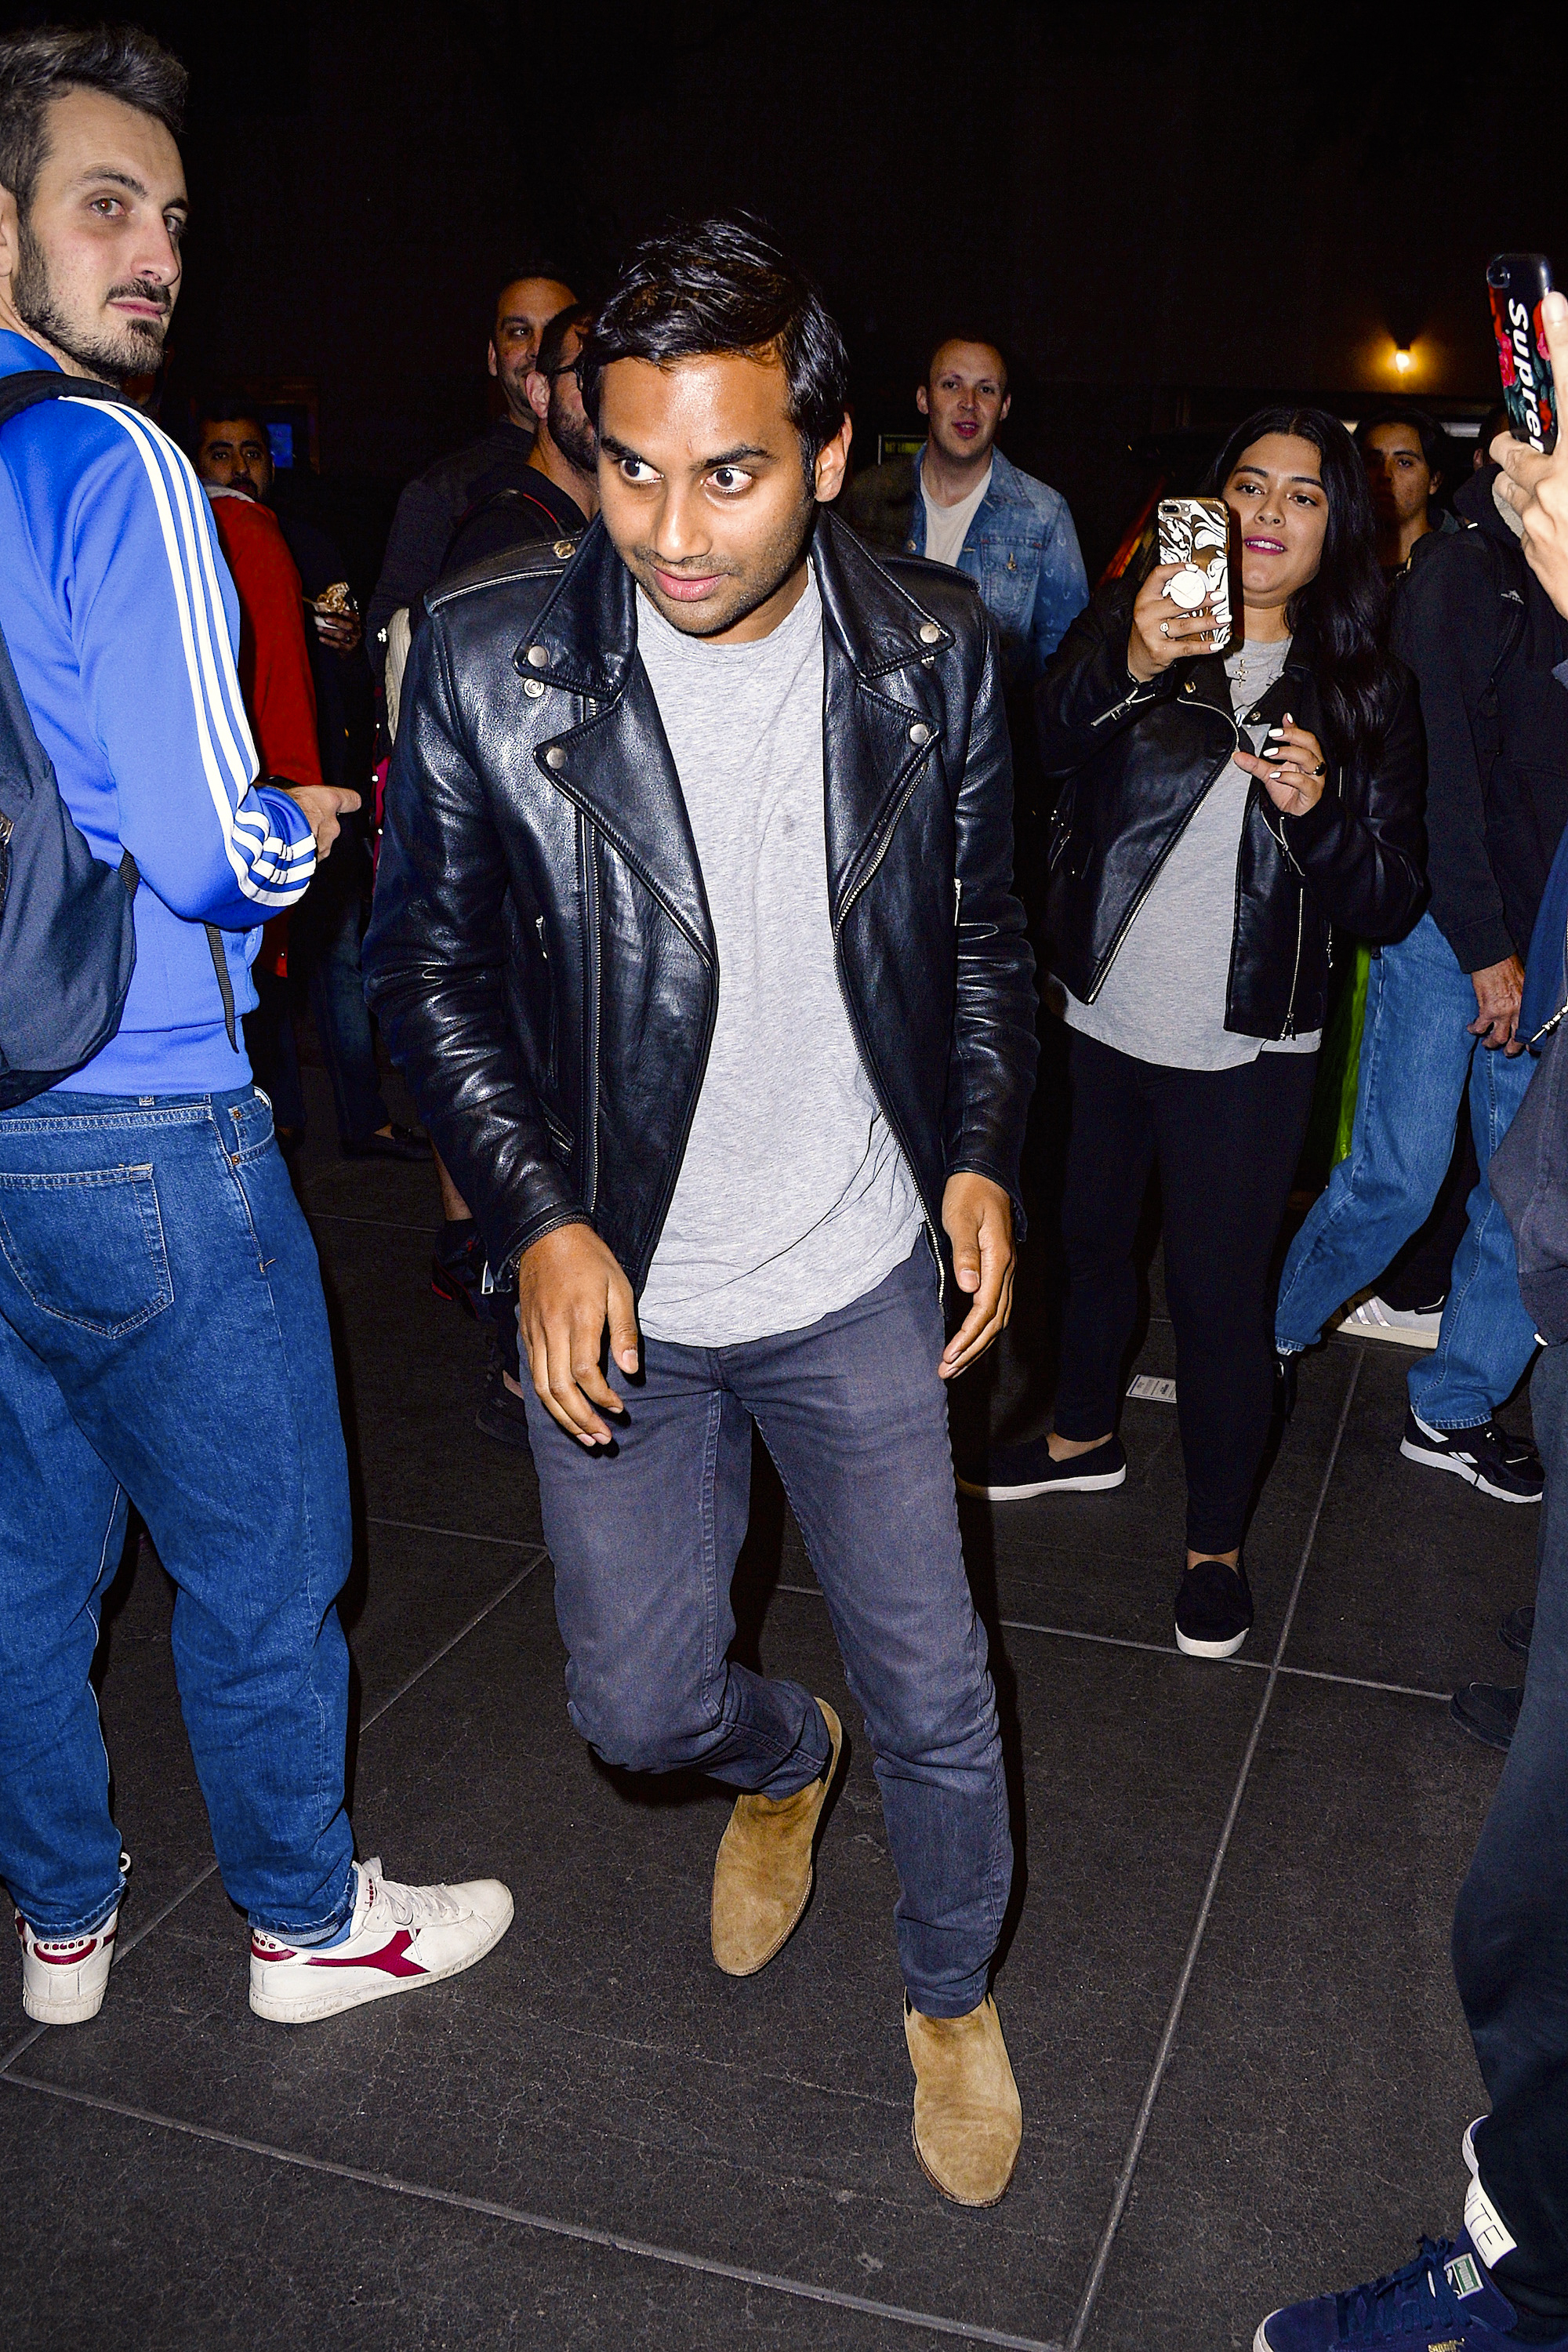 Aziz Ansari's 2019 tour and its complicated, necessary role in #MeToo